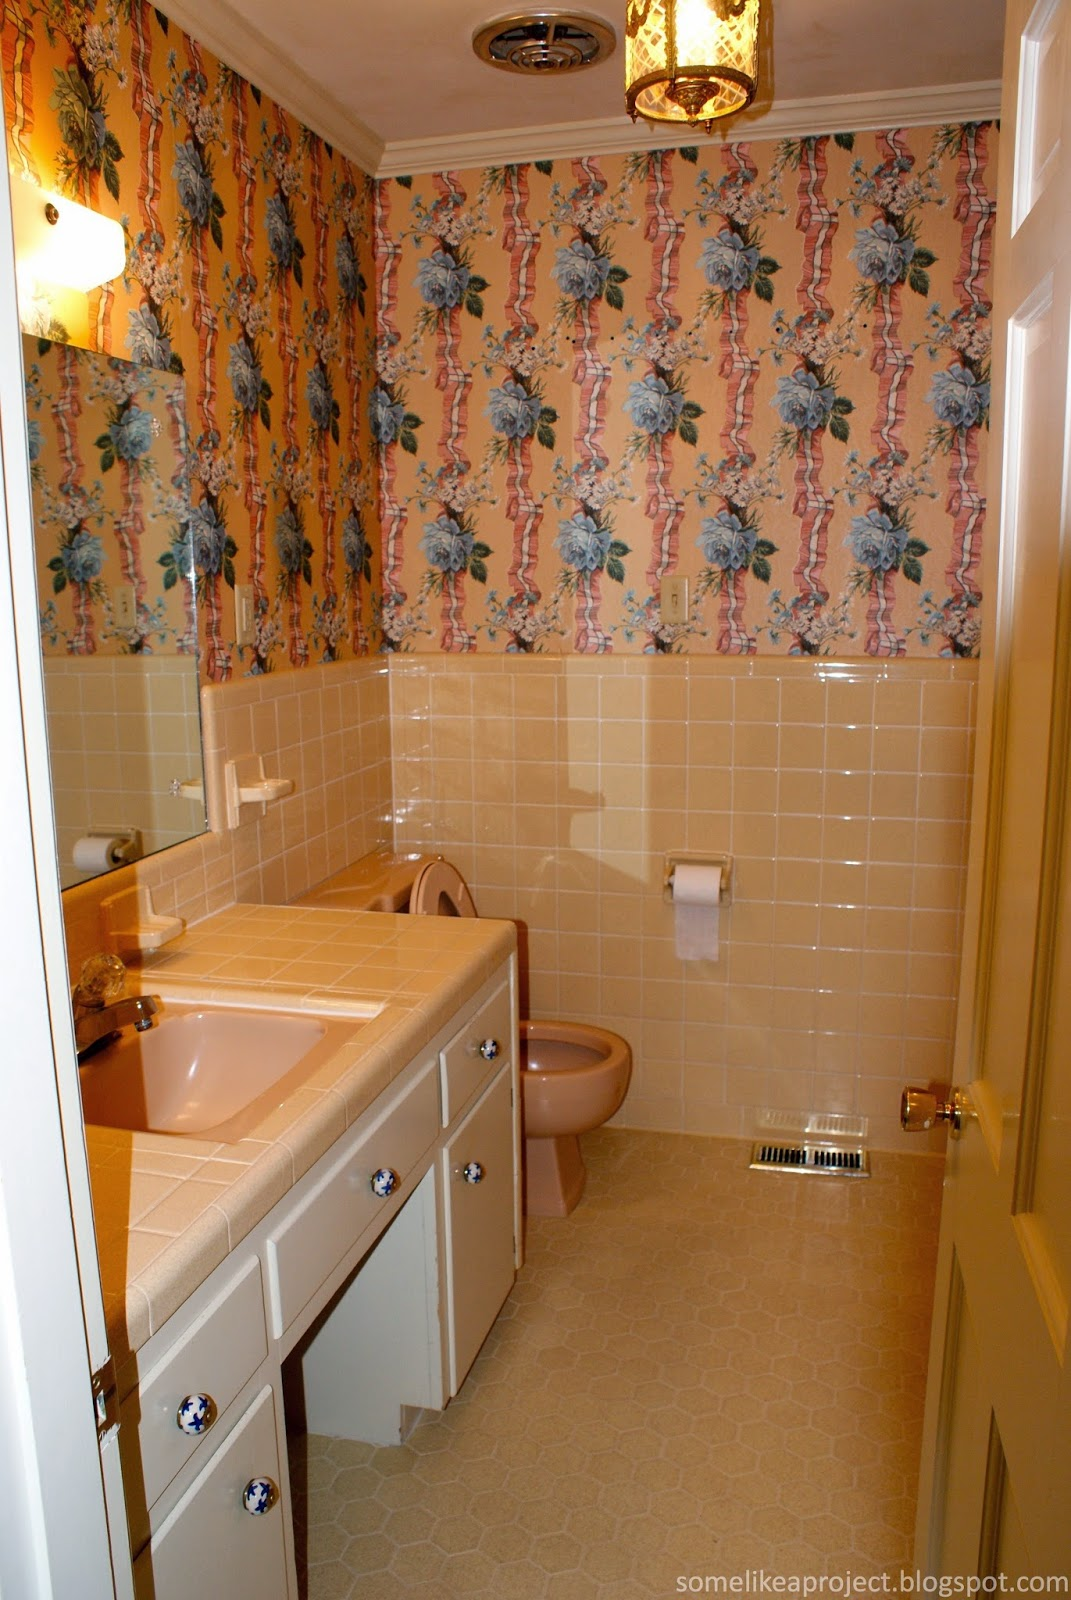 Some Like A Project Guest Bathroom Reveal Making The Most Of 1960s Tile